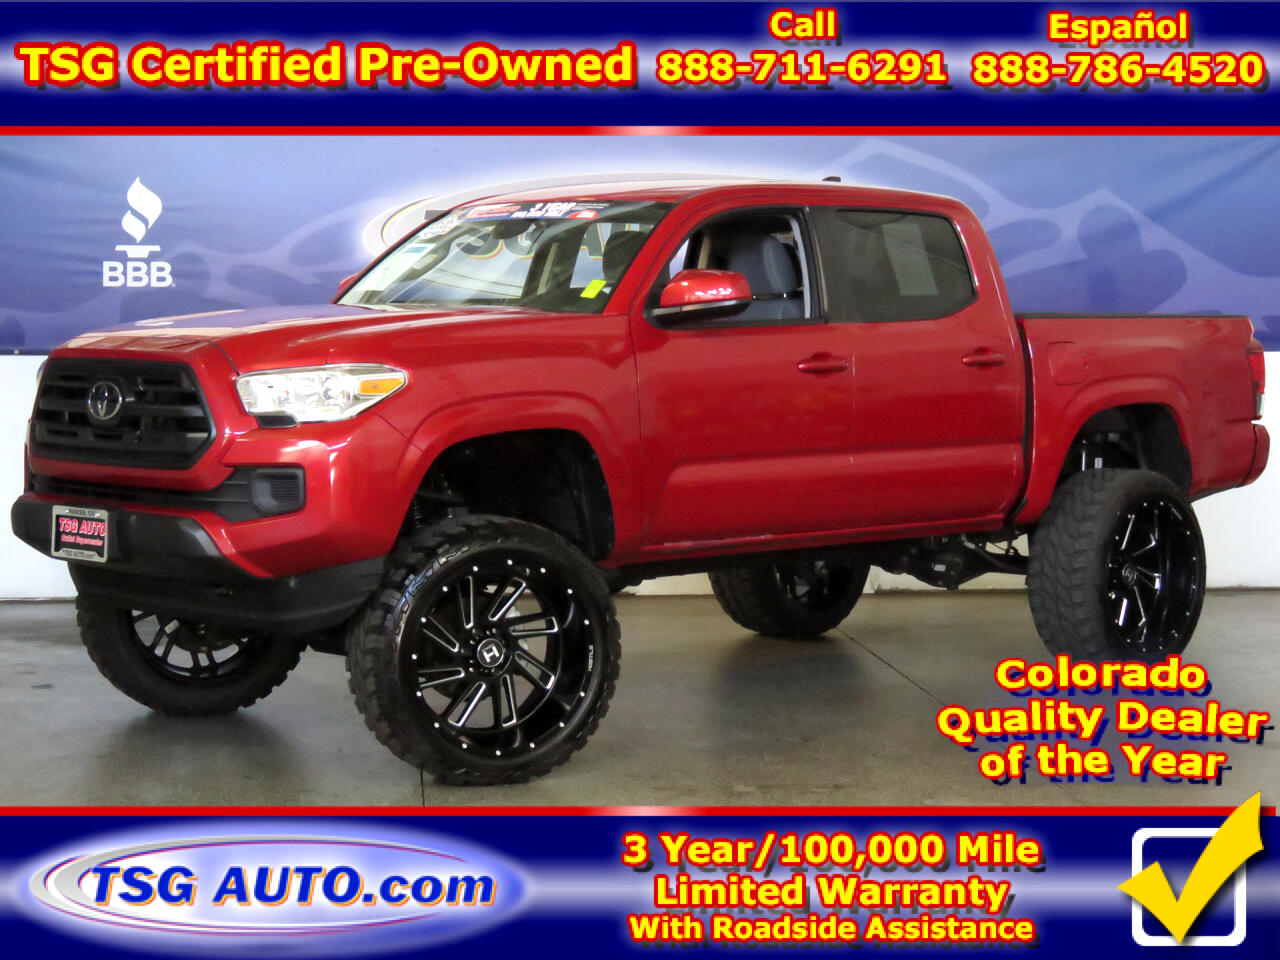 2019 Toyota Tacoma 4WD SR5 Double Cab 4WD W/Custom Lift/Wheels/Tires